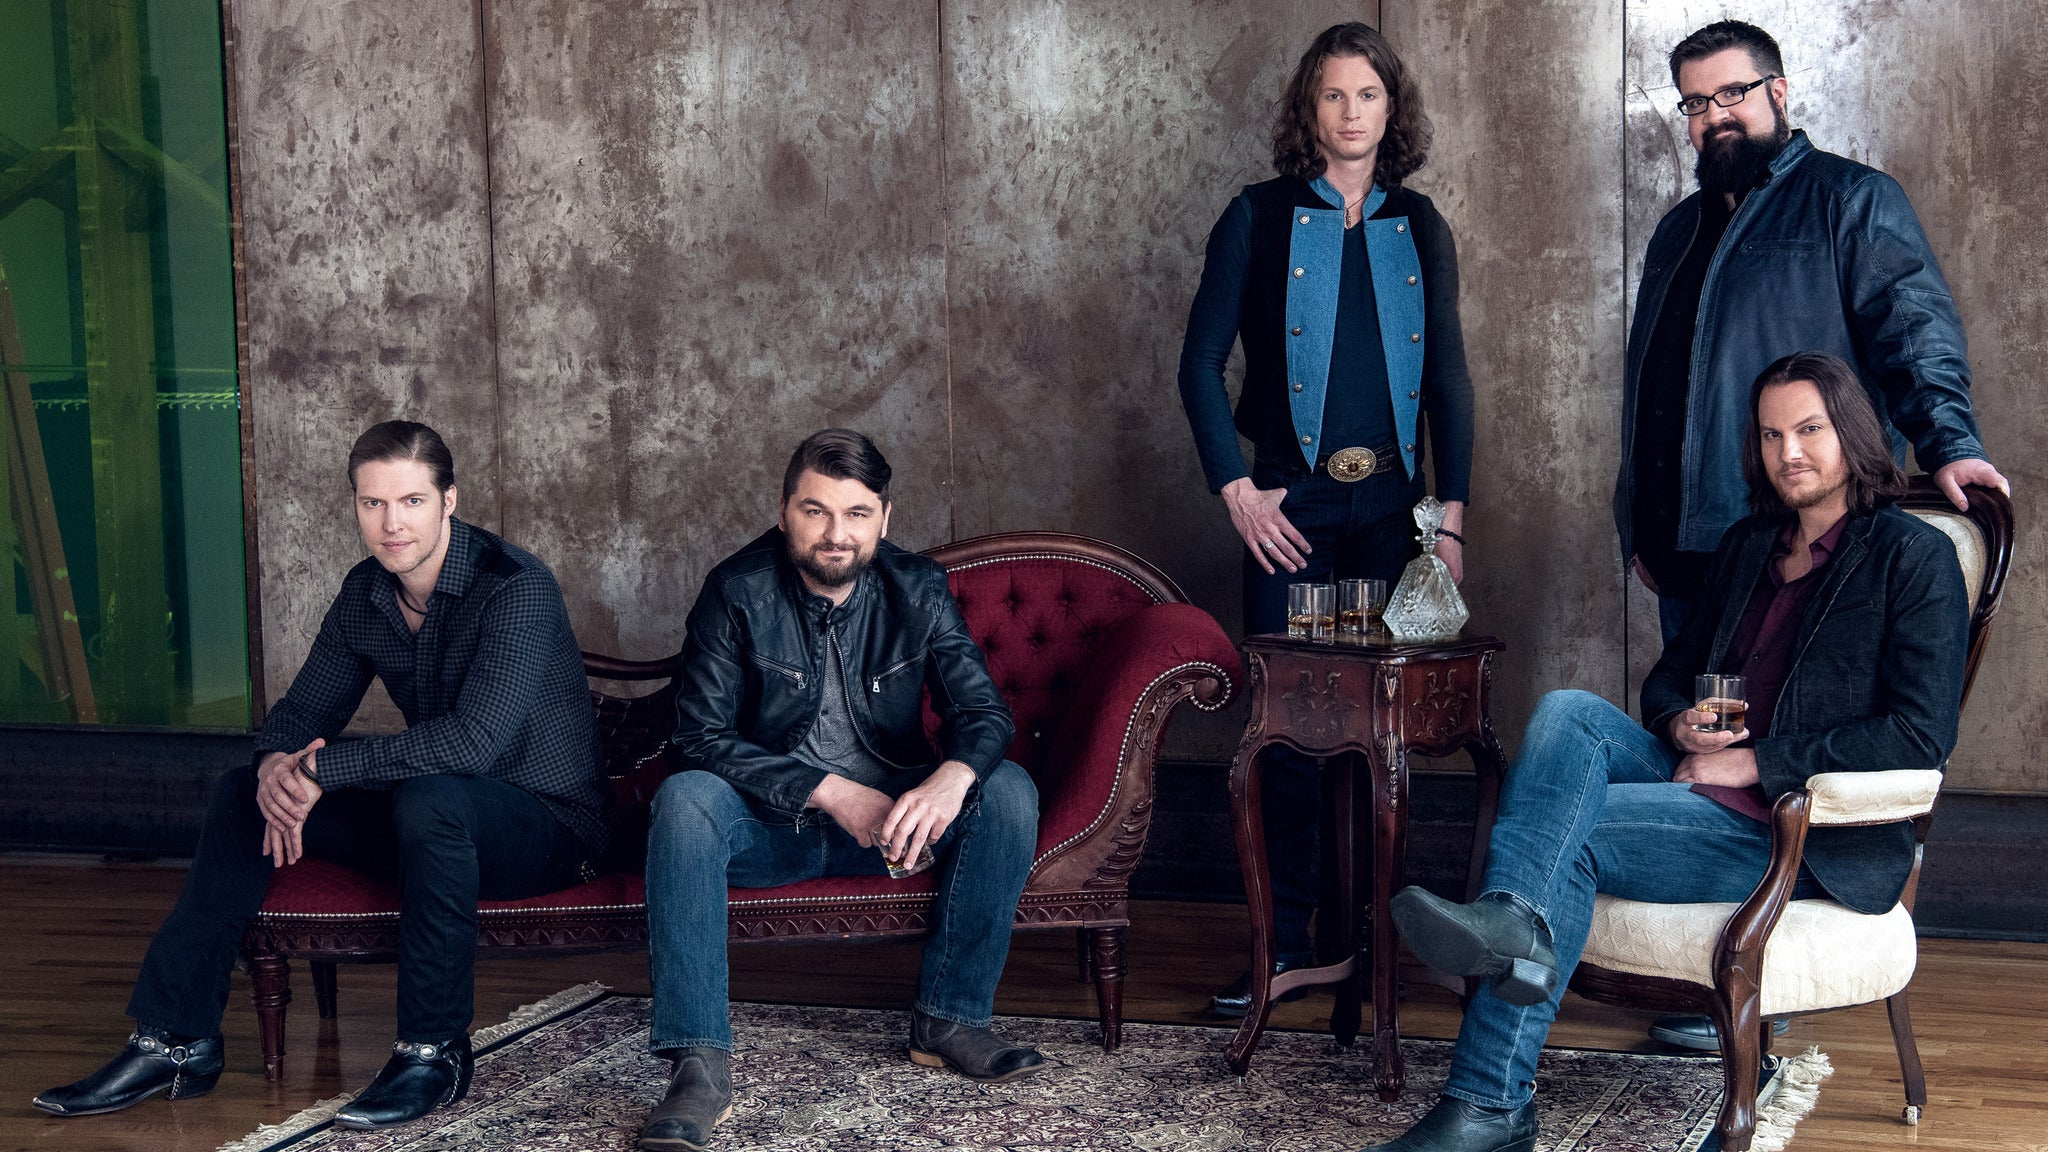 Home Free at Gallo Center for the Arts